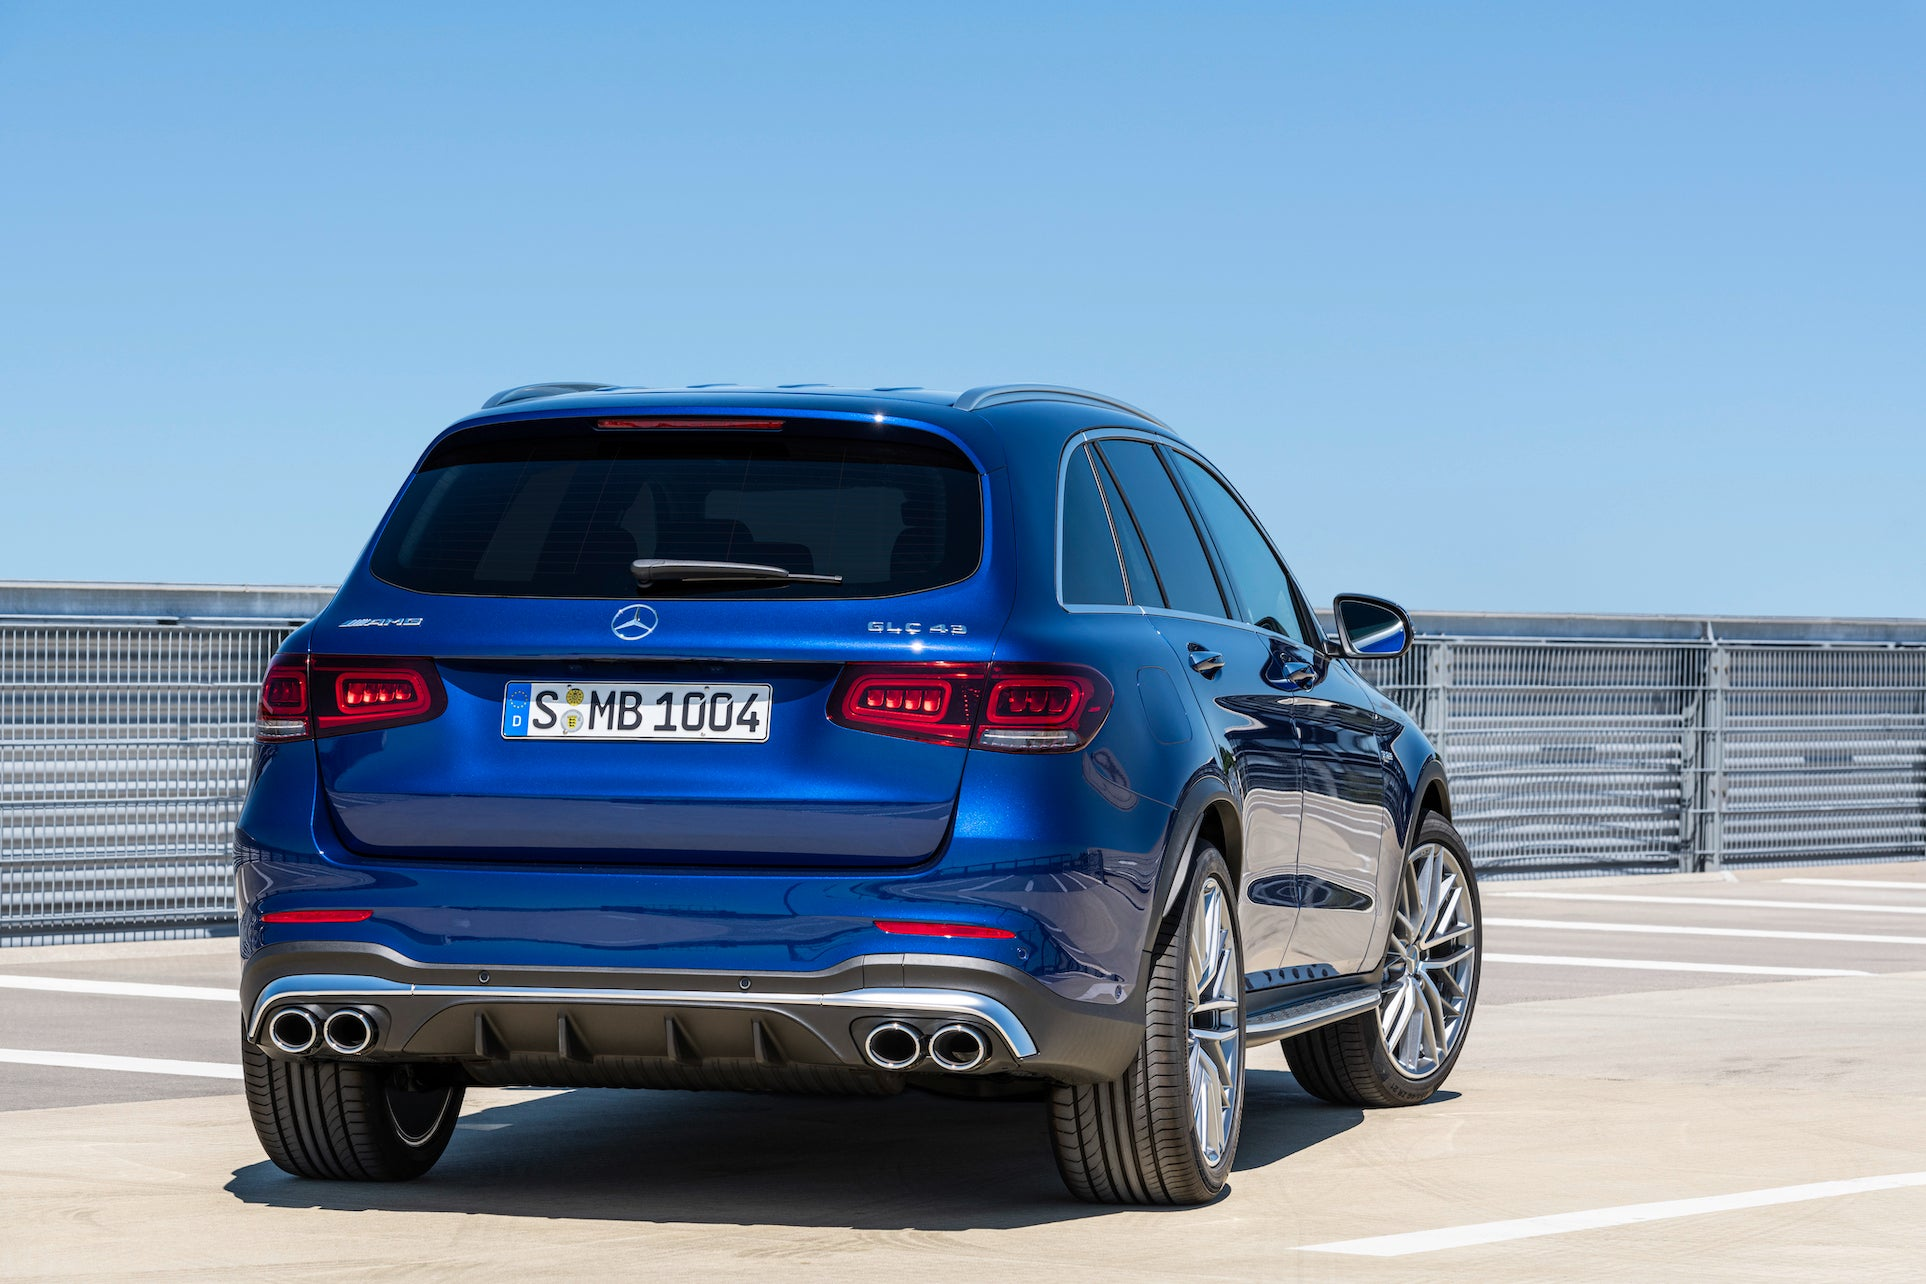 The new Mercedes-AMG GLC 43 4MATIC models 2